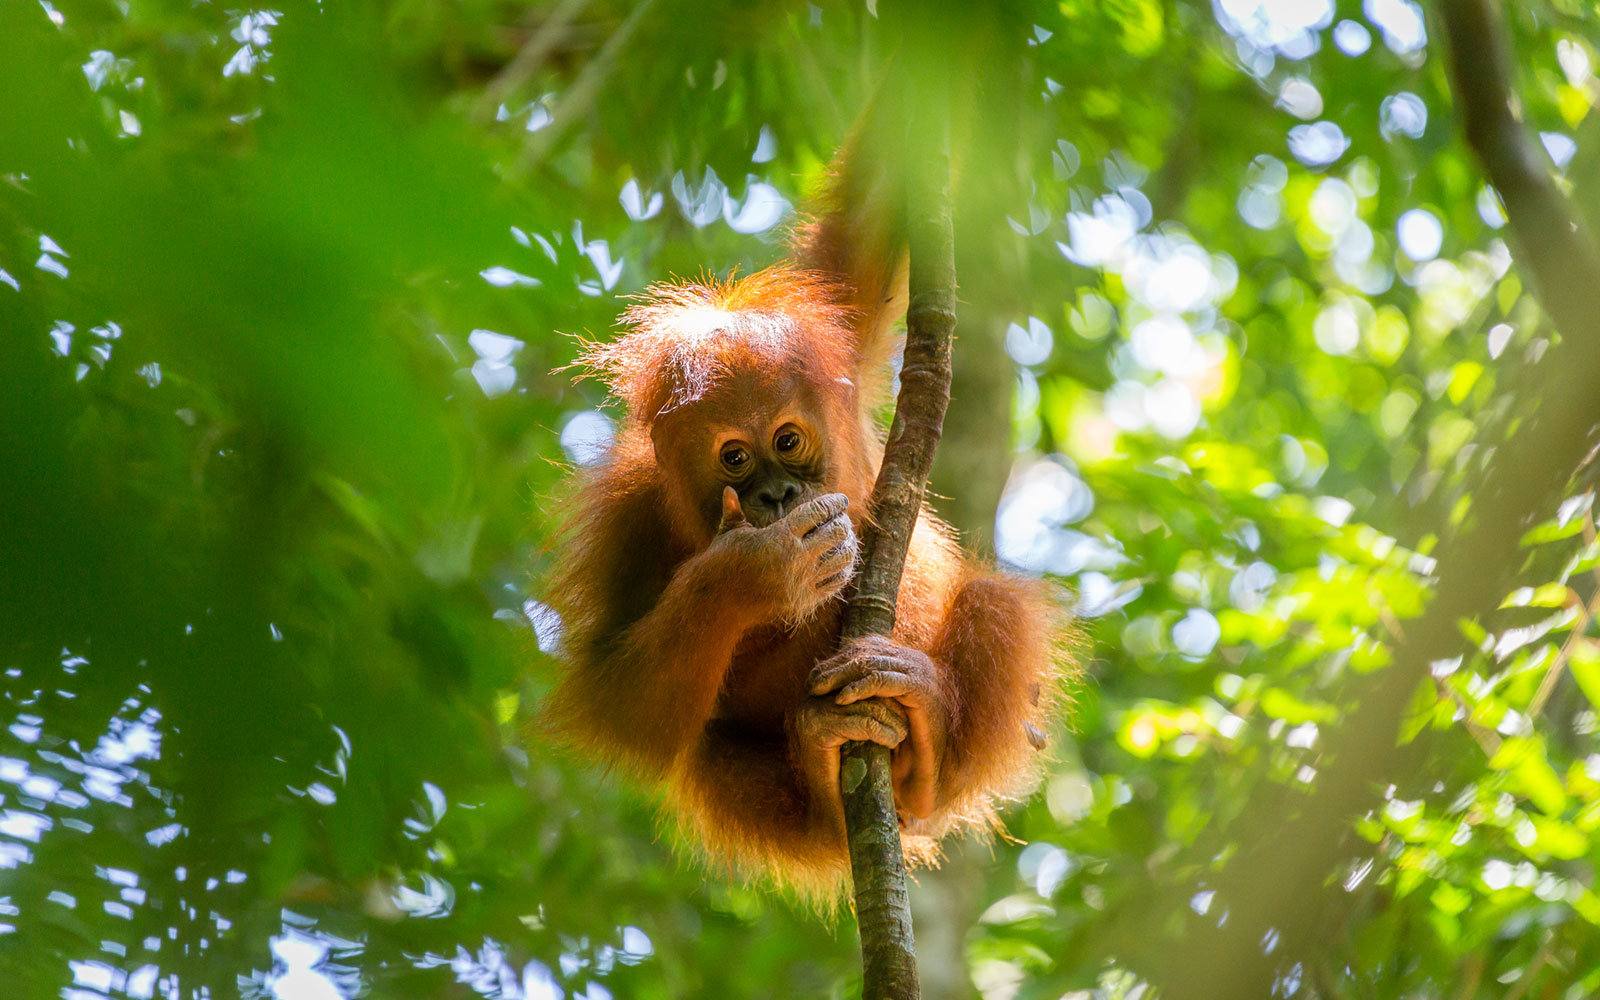 Orangutan, Gunung Leuser National Park, Sumatran Rainforest, Indonesia